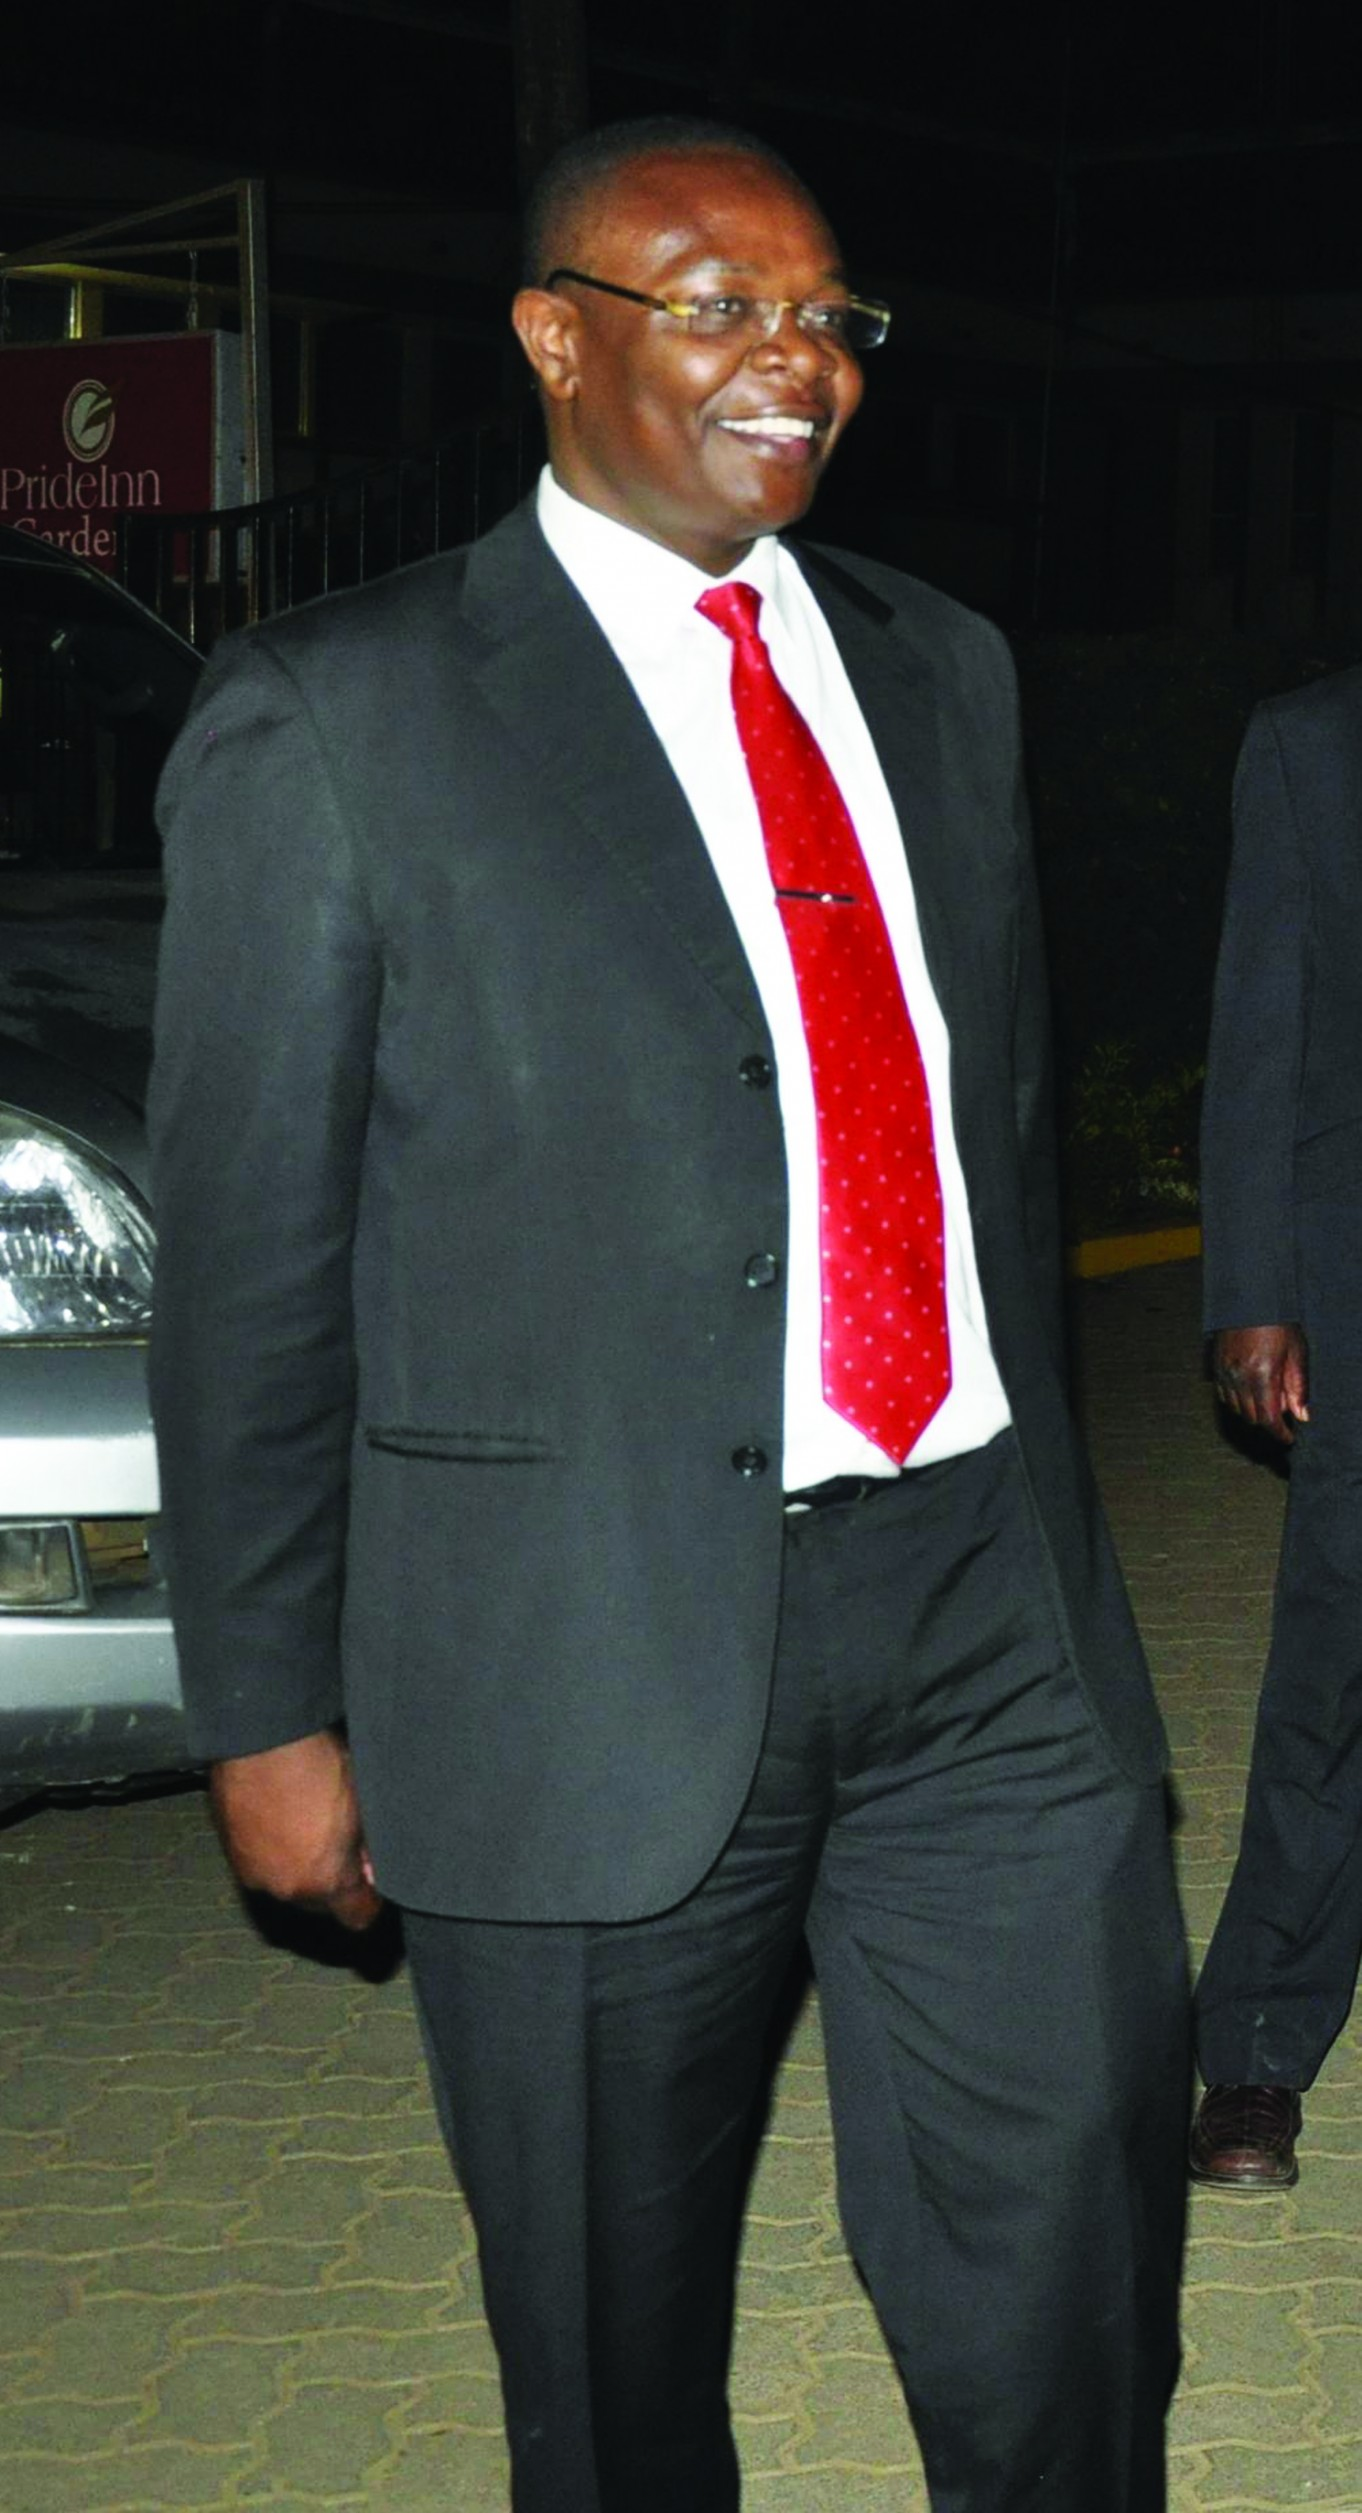 Why Otuoma could be writing his political orbituary